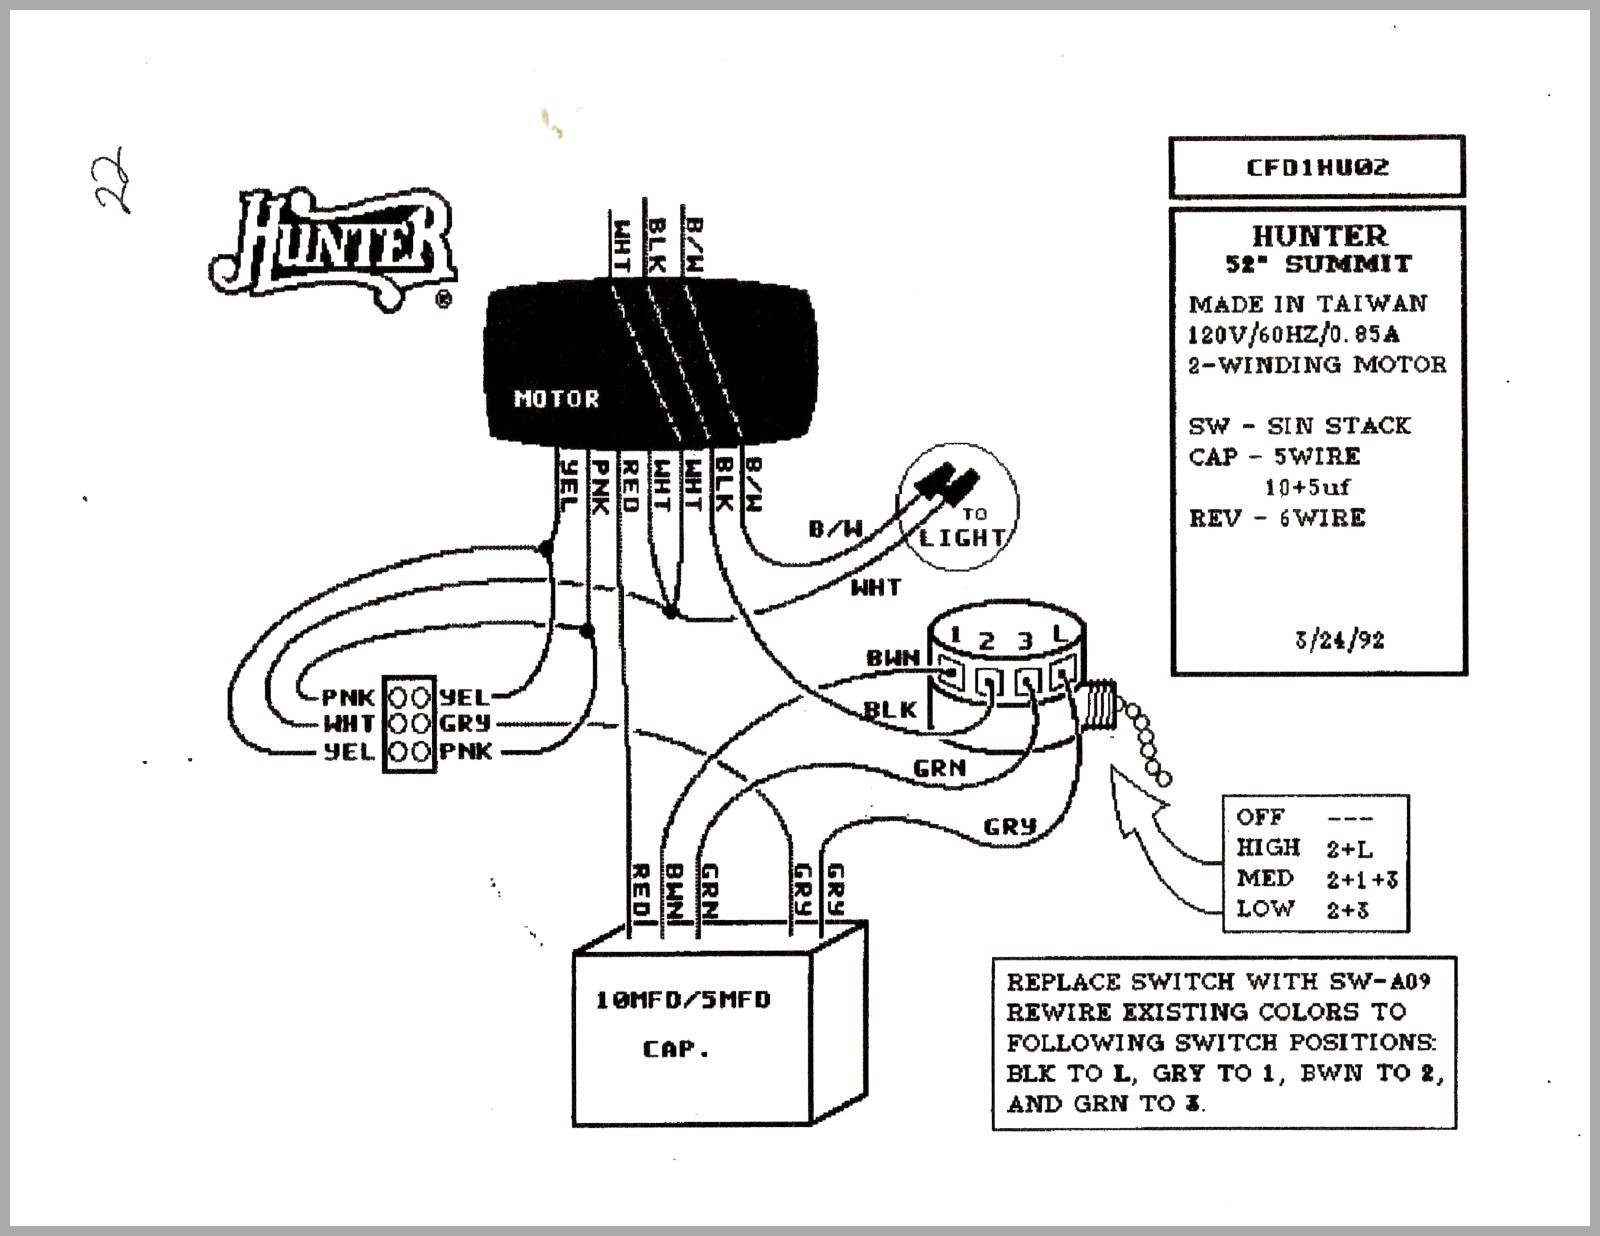 Hampton Bay Ceiling Fan Wiring Diagram - Wiring Diagram for Hampton Bay Ceiling Fan with Remote Inspirationa Hampton Bay Ceiling Fan Wiring Diagram Awesome Hampton Bay Ceiling 15c